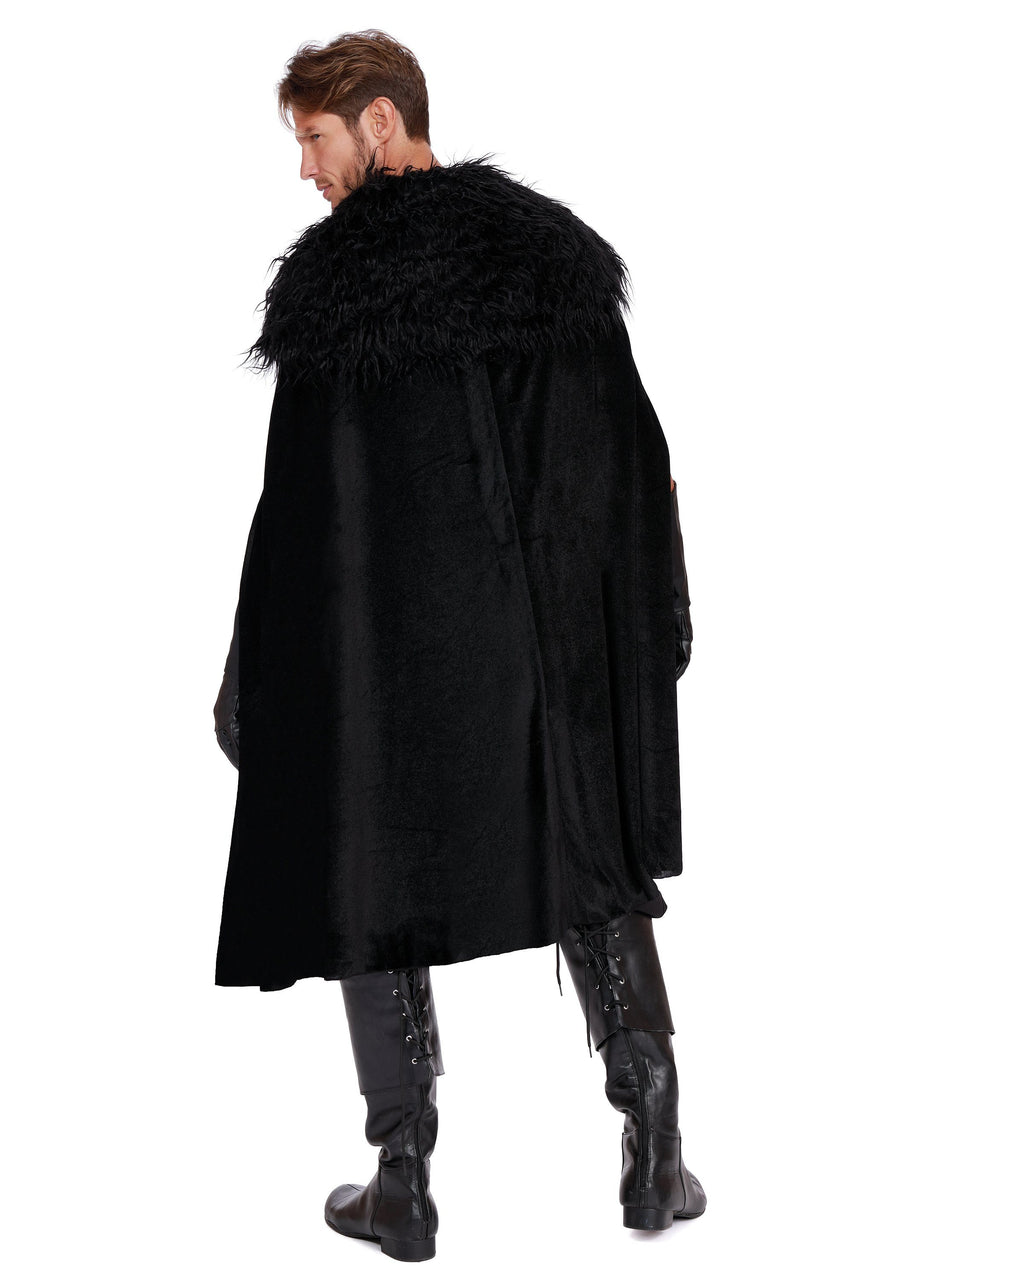 King of Thrones Men's Costume Dreamgirl Costume